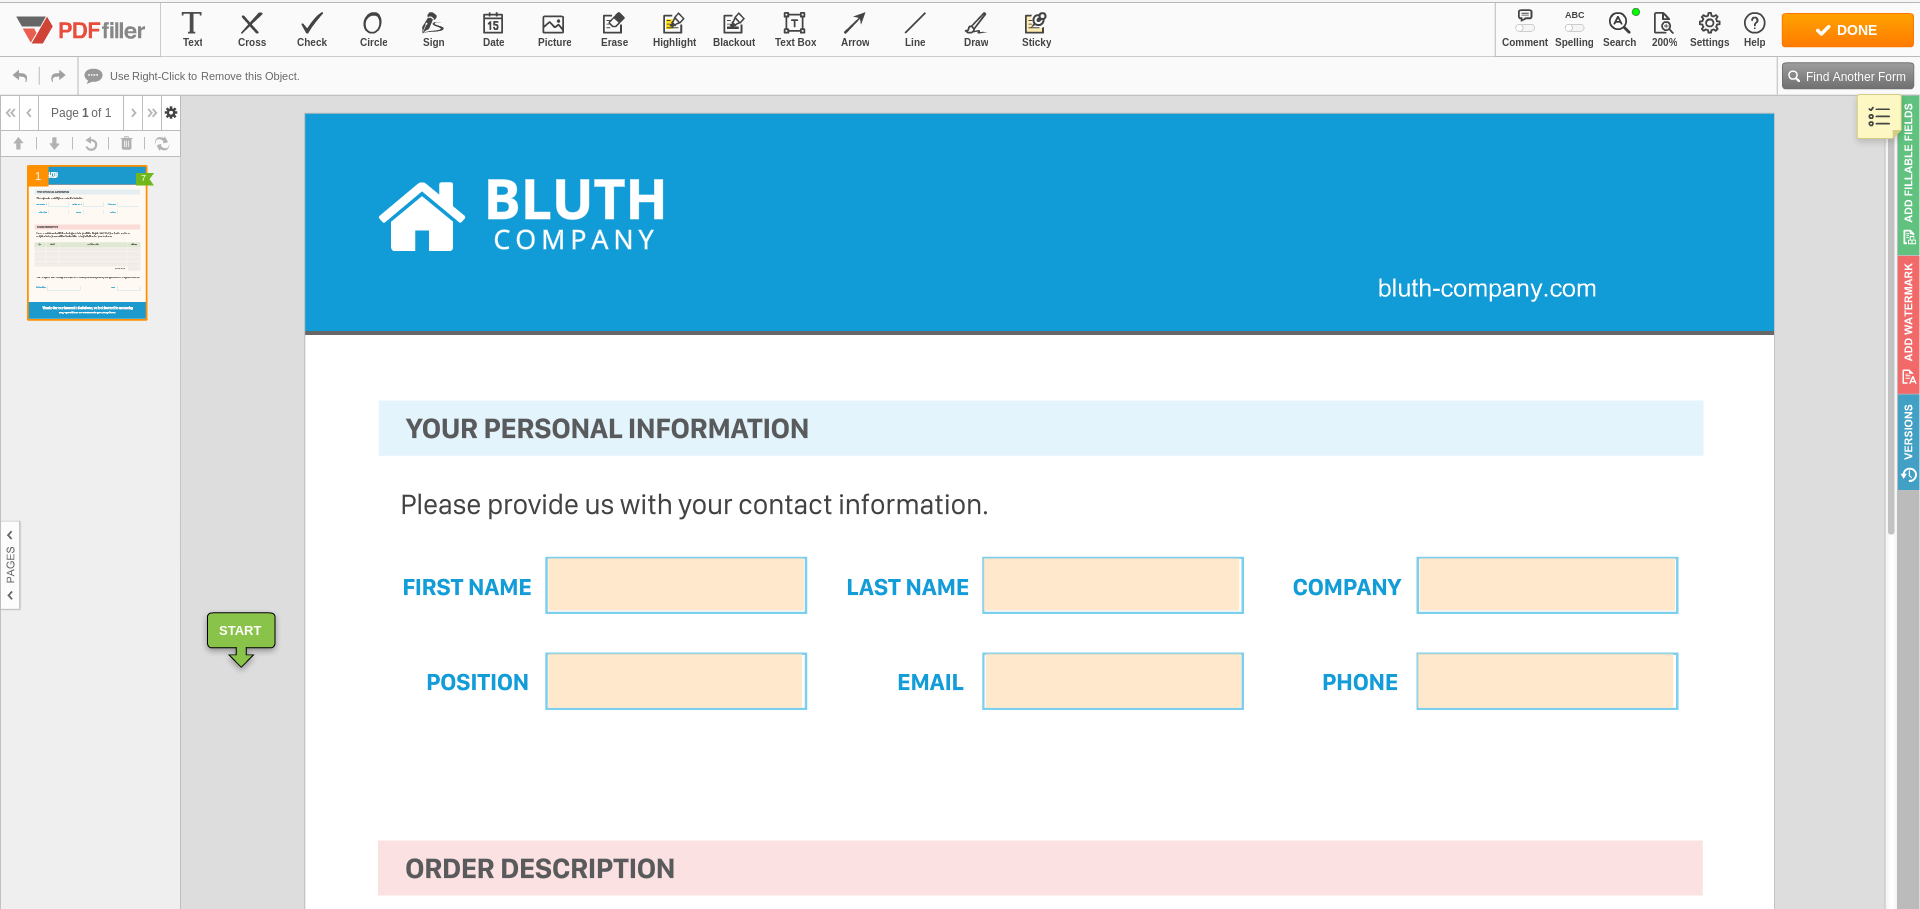 Integrate PDFfiller's DaDaDocs with Zoho CRM